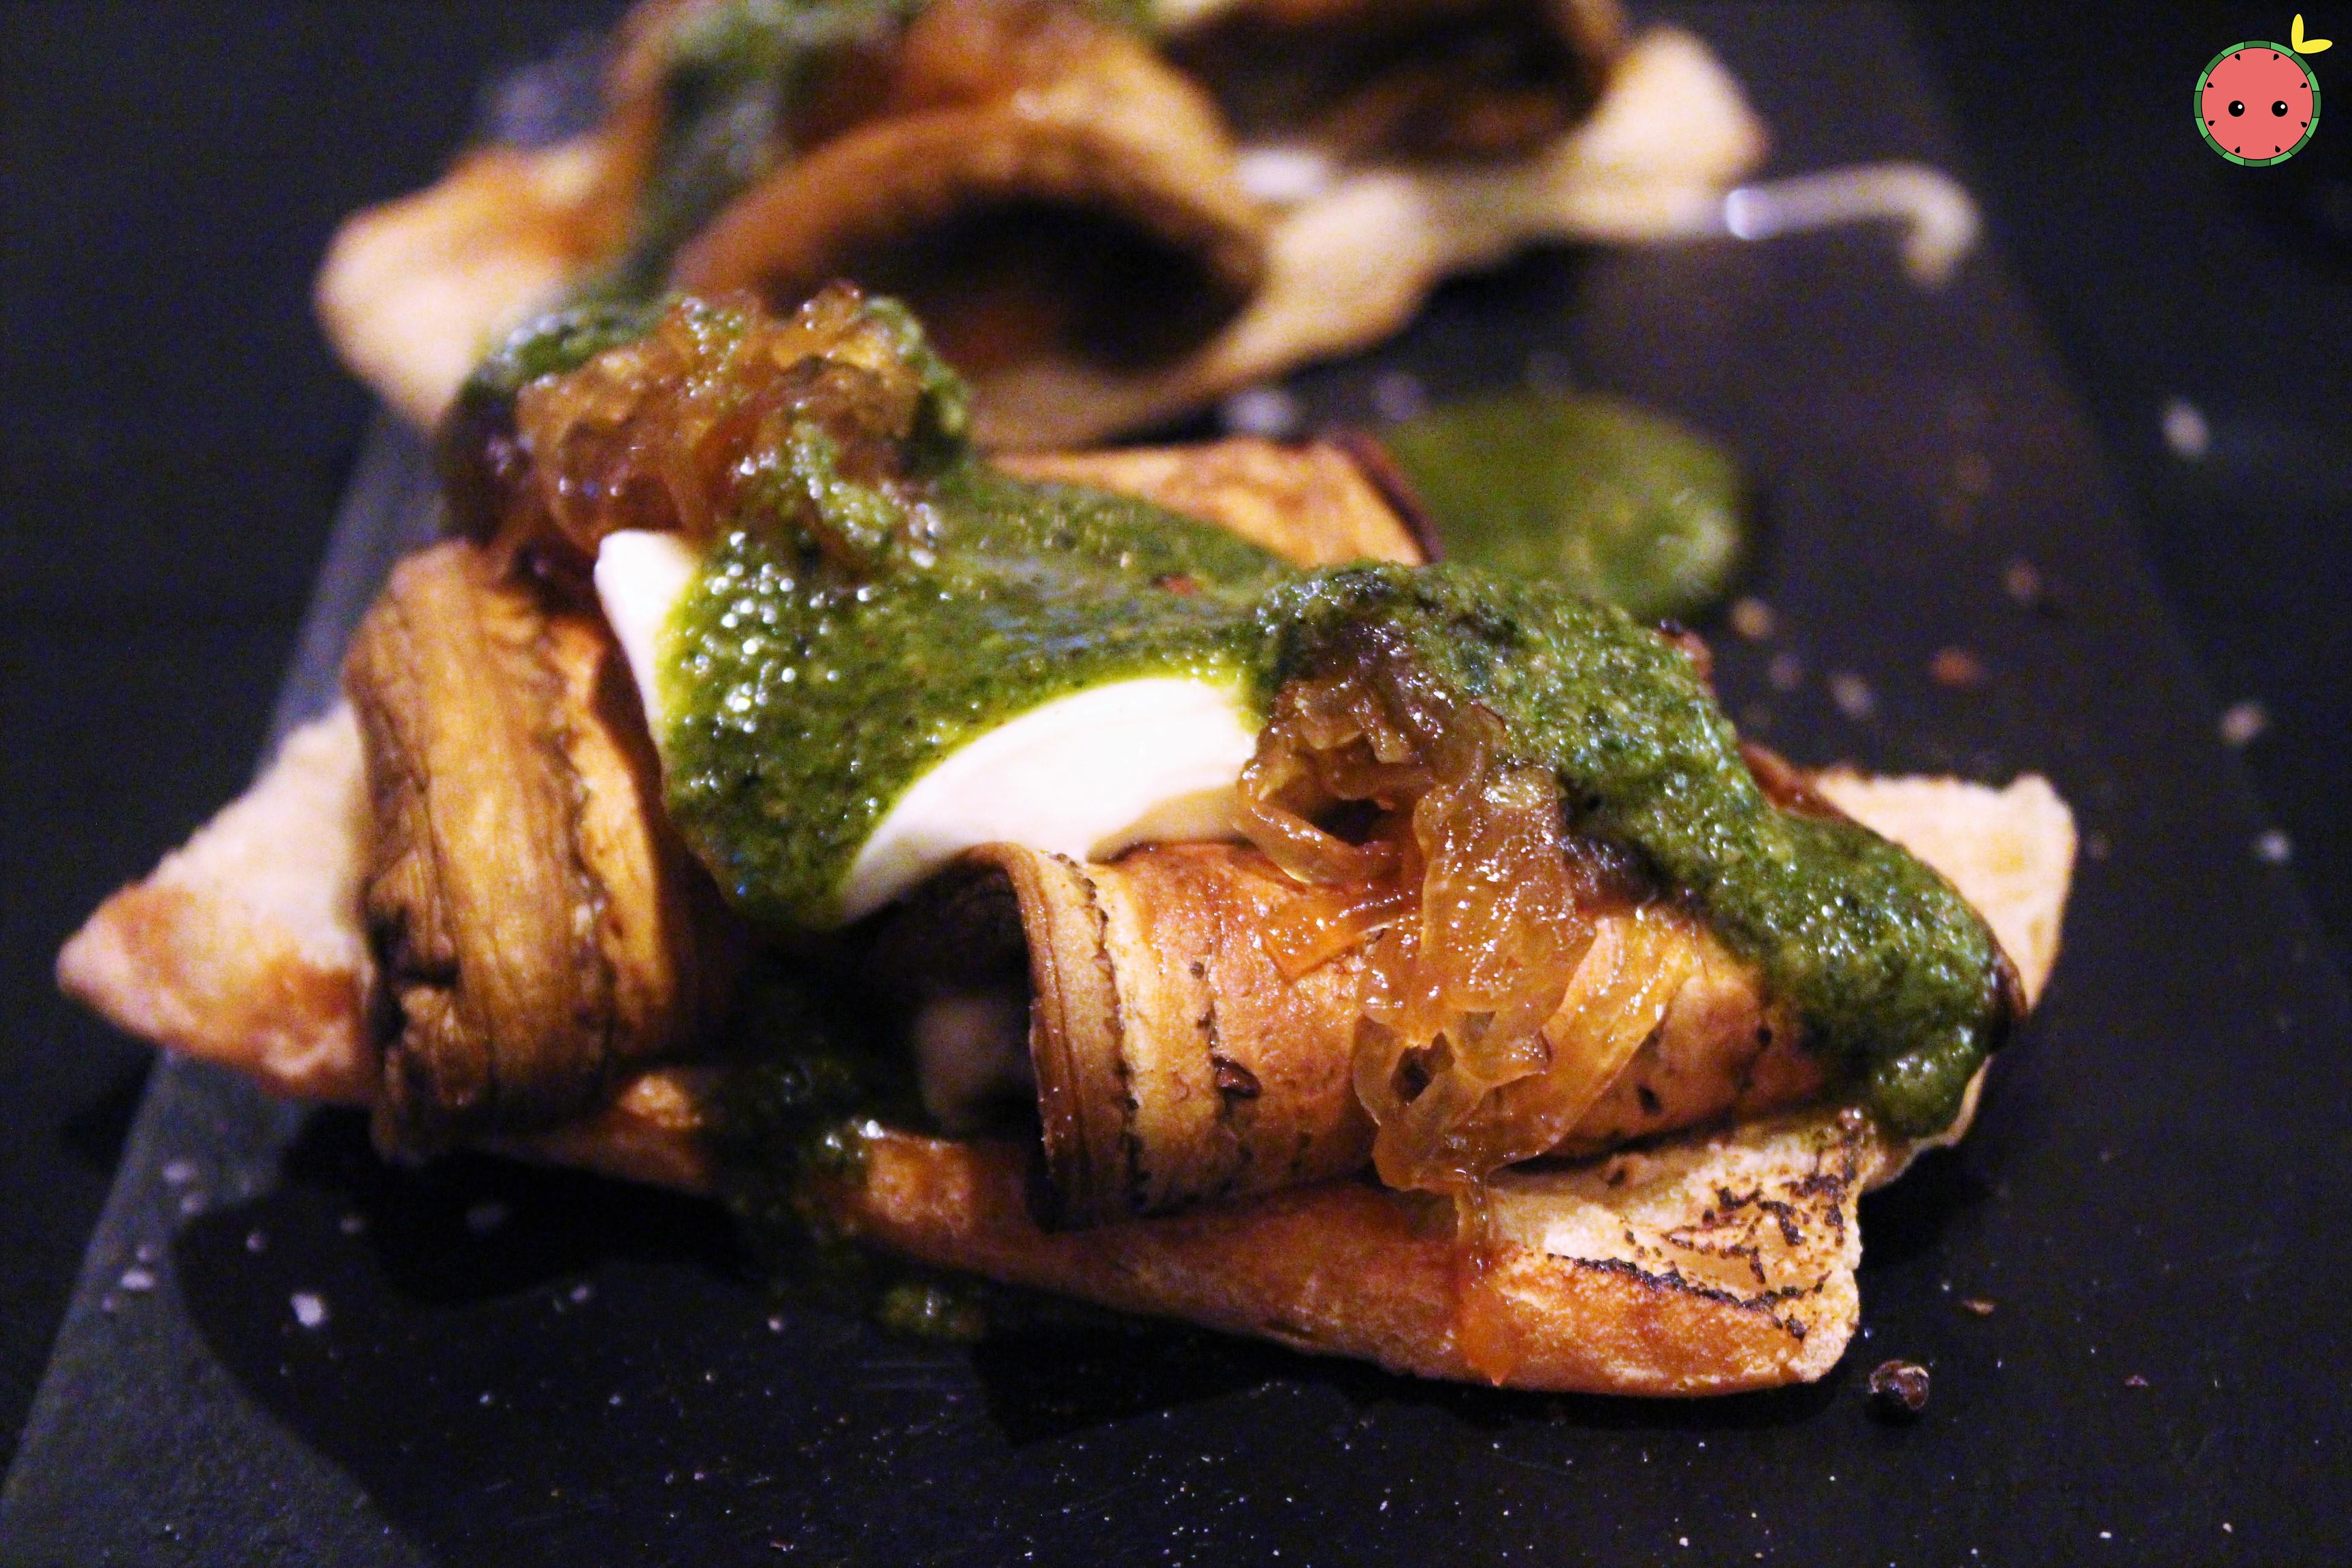 Grilled Aubergine, Mozzarella, and Caramelized Onions with Basil Vinaigrette